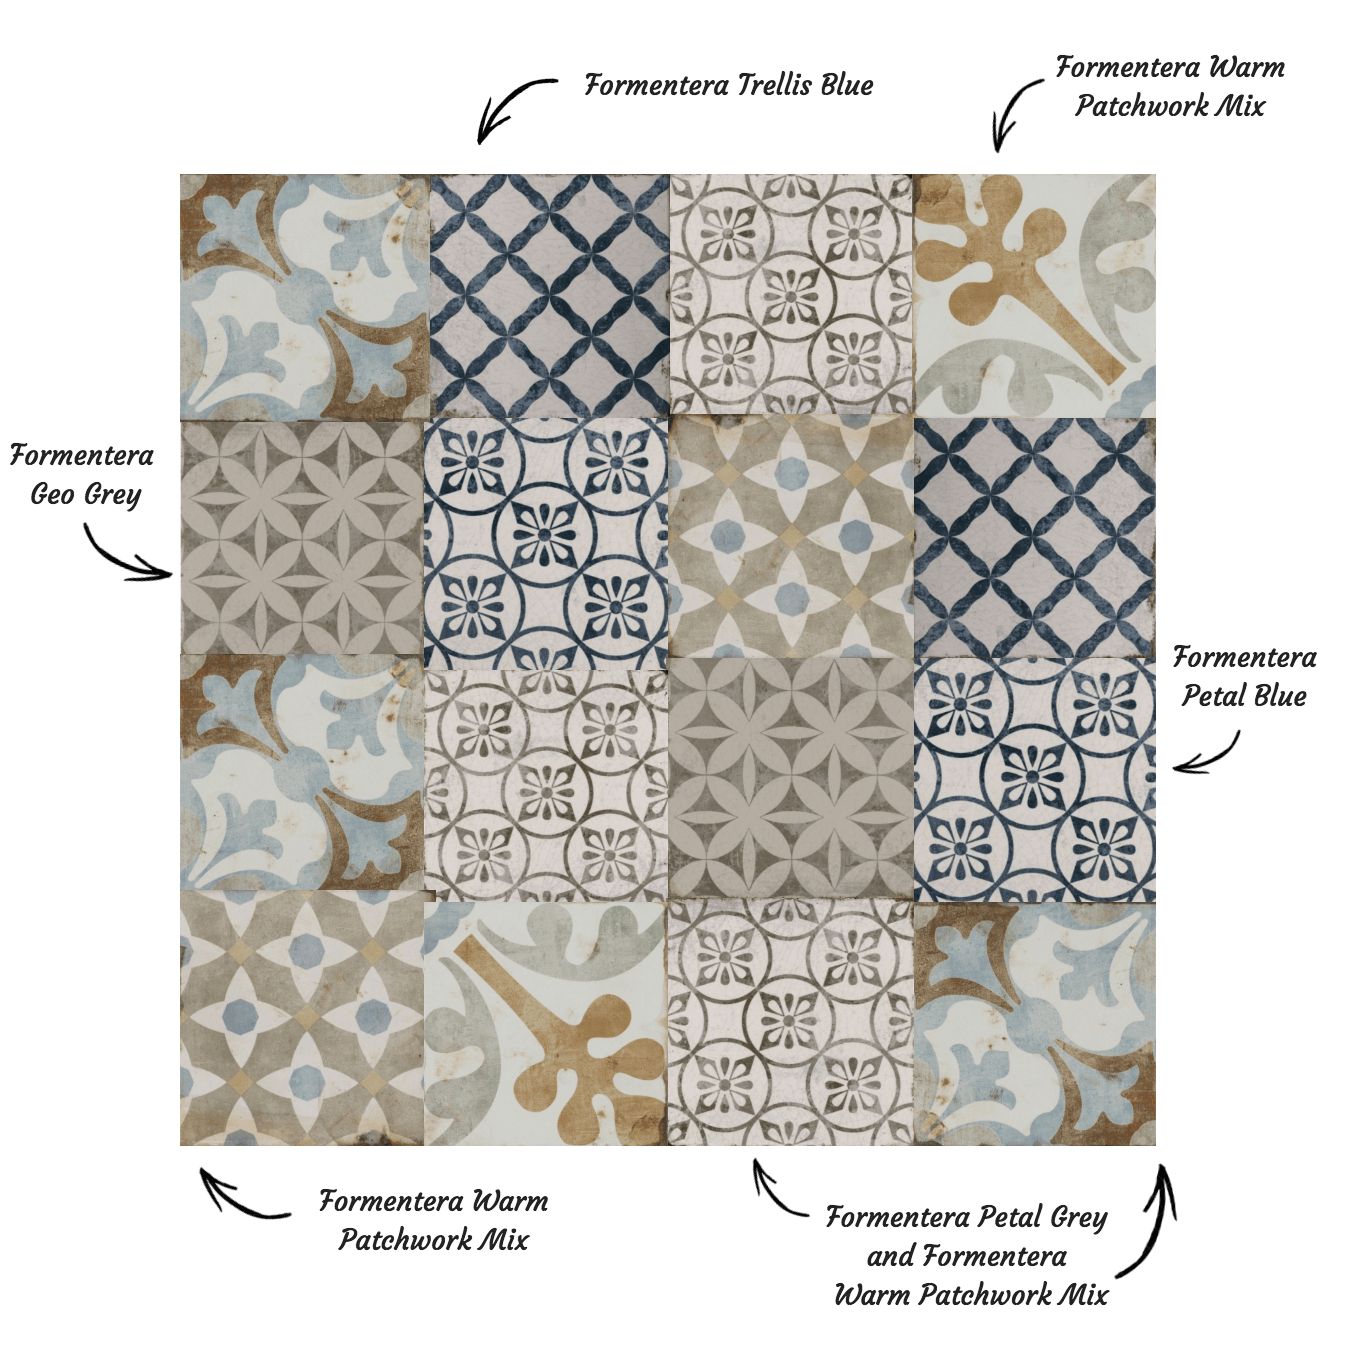 Collage of Formentera Tiles from Tile Giant